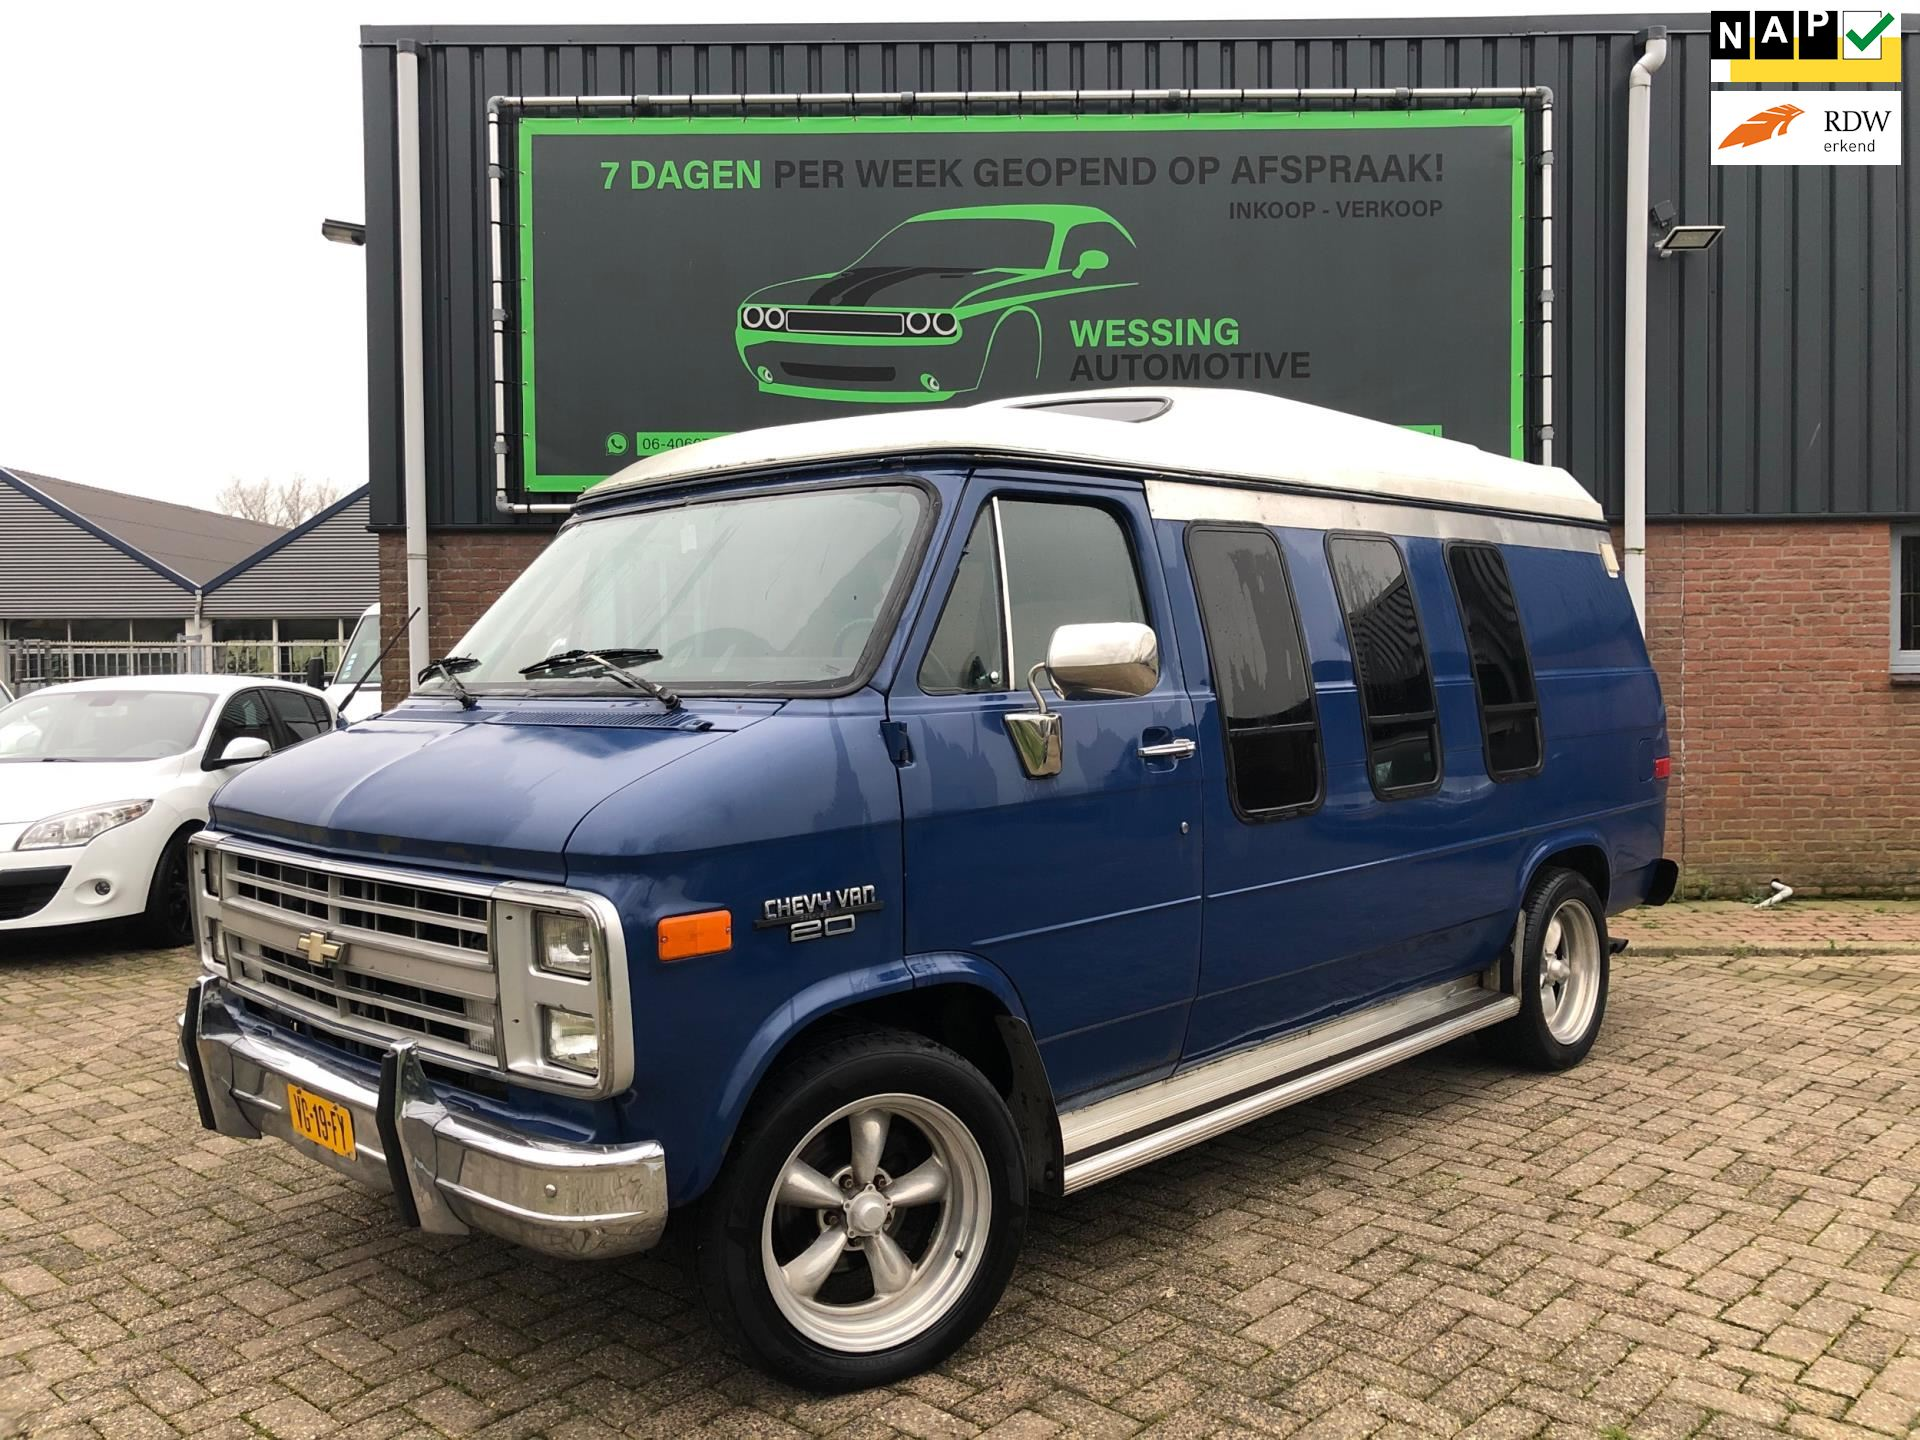 Chevrolet CHEVY VAN 20 DIESEL occasion - Wessing Automotive